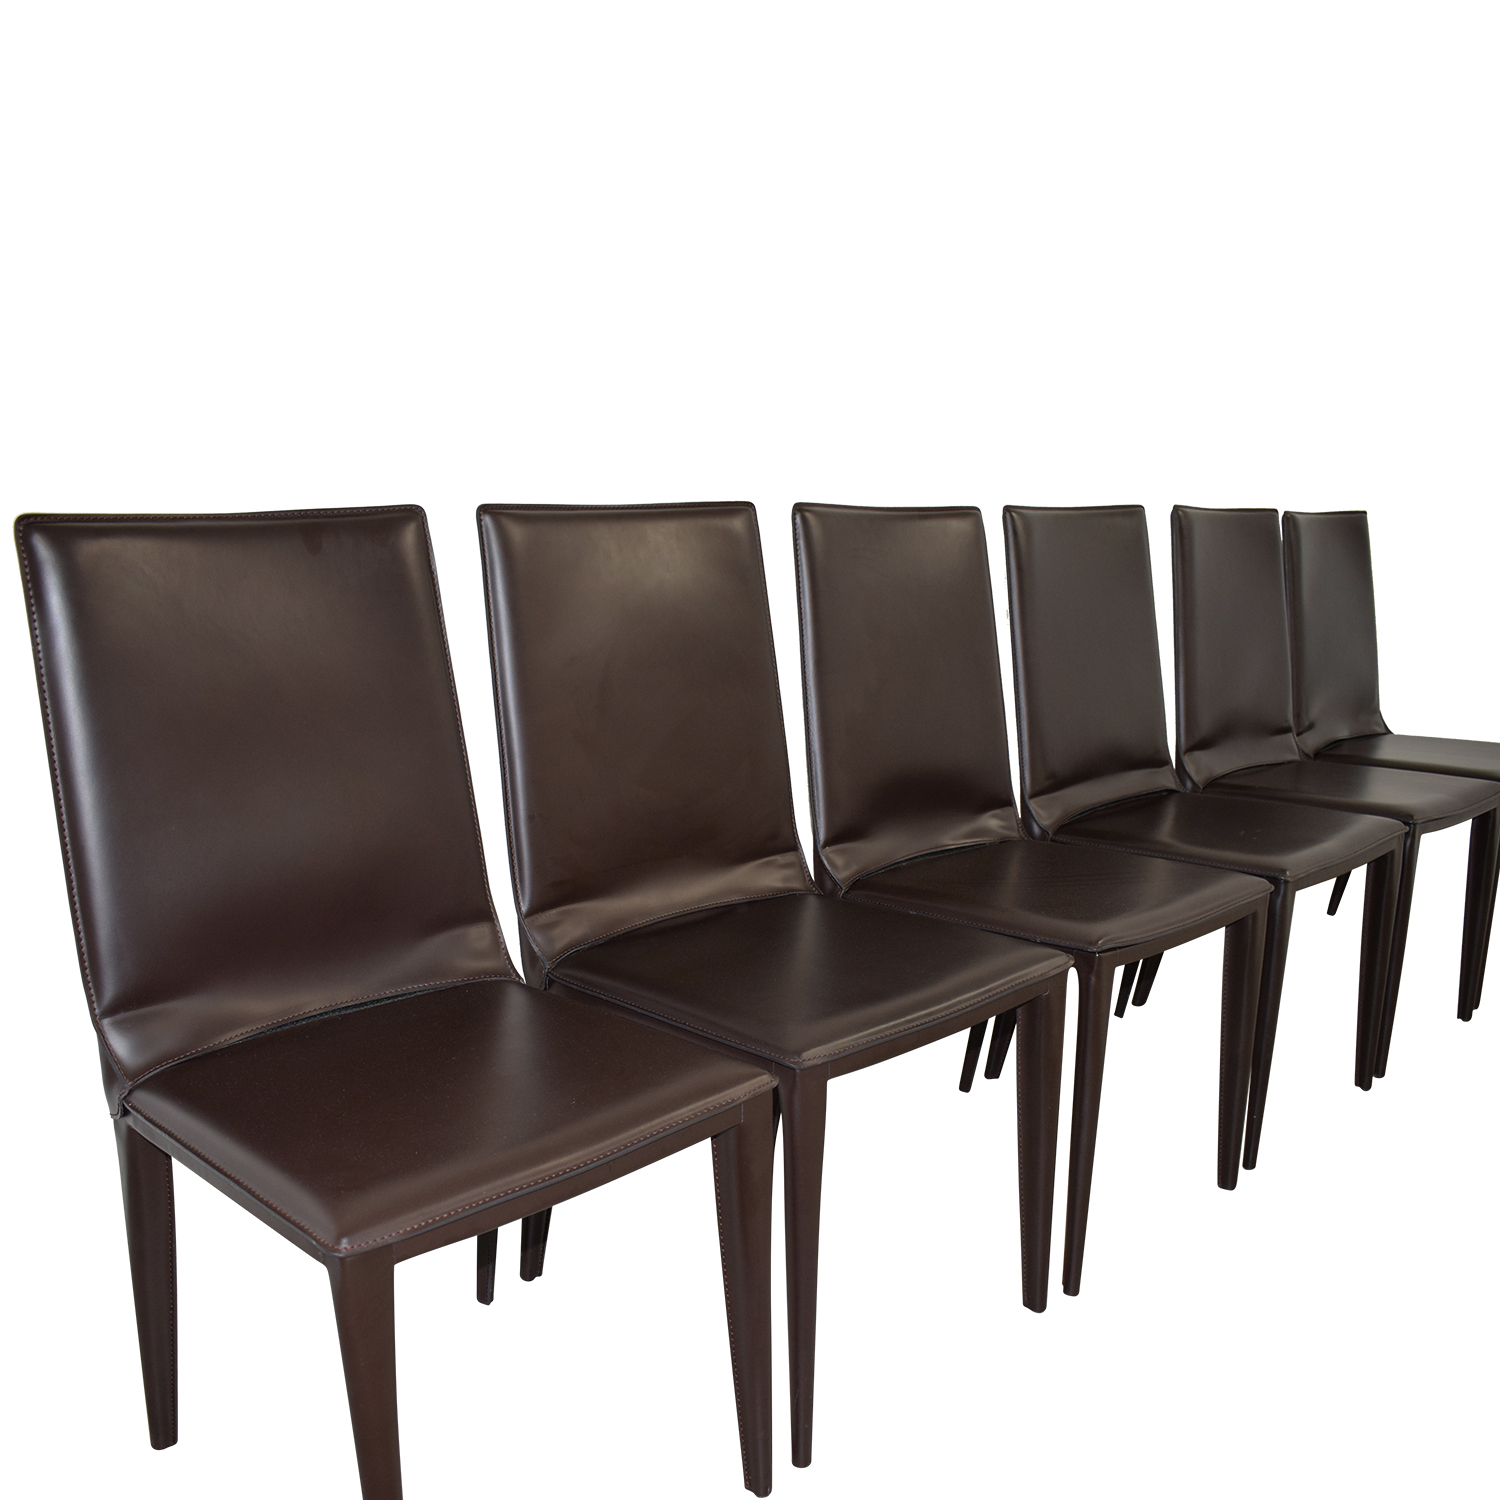 70% OFF - Frag Frag Brown Leather Dining Room Chairs / Chairs